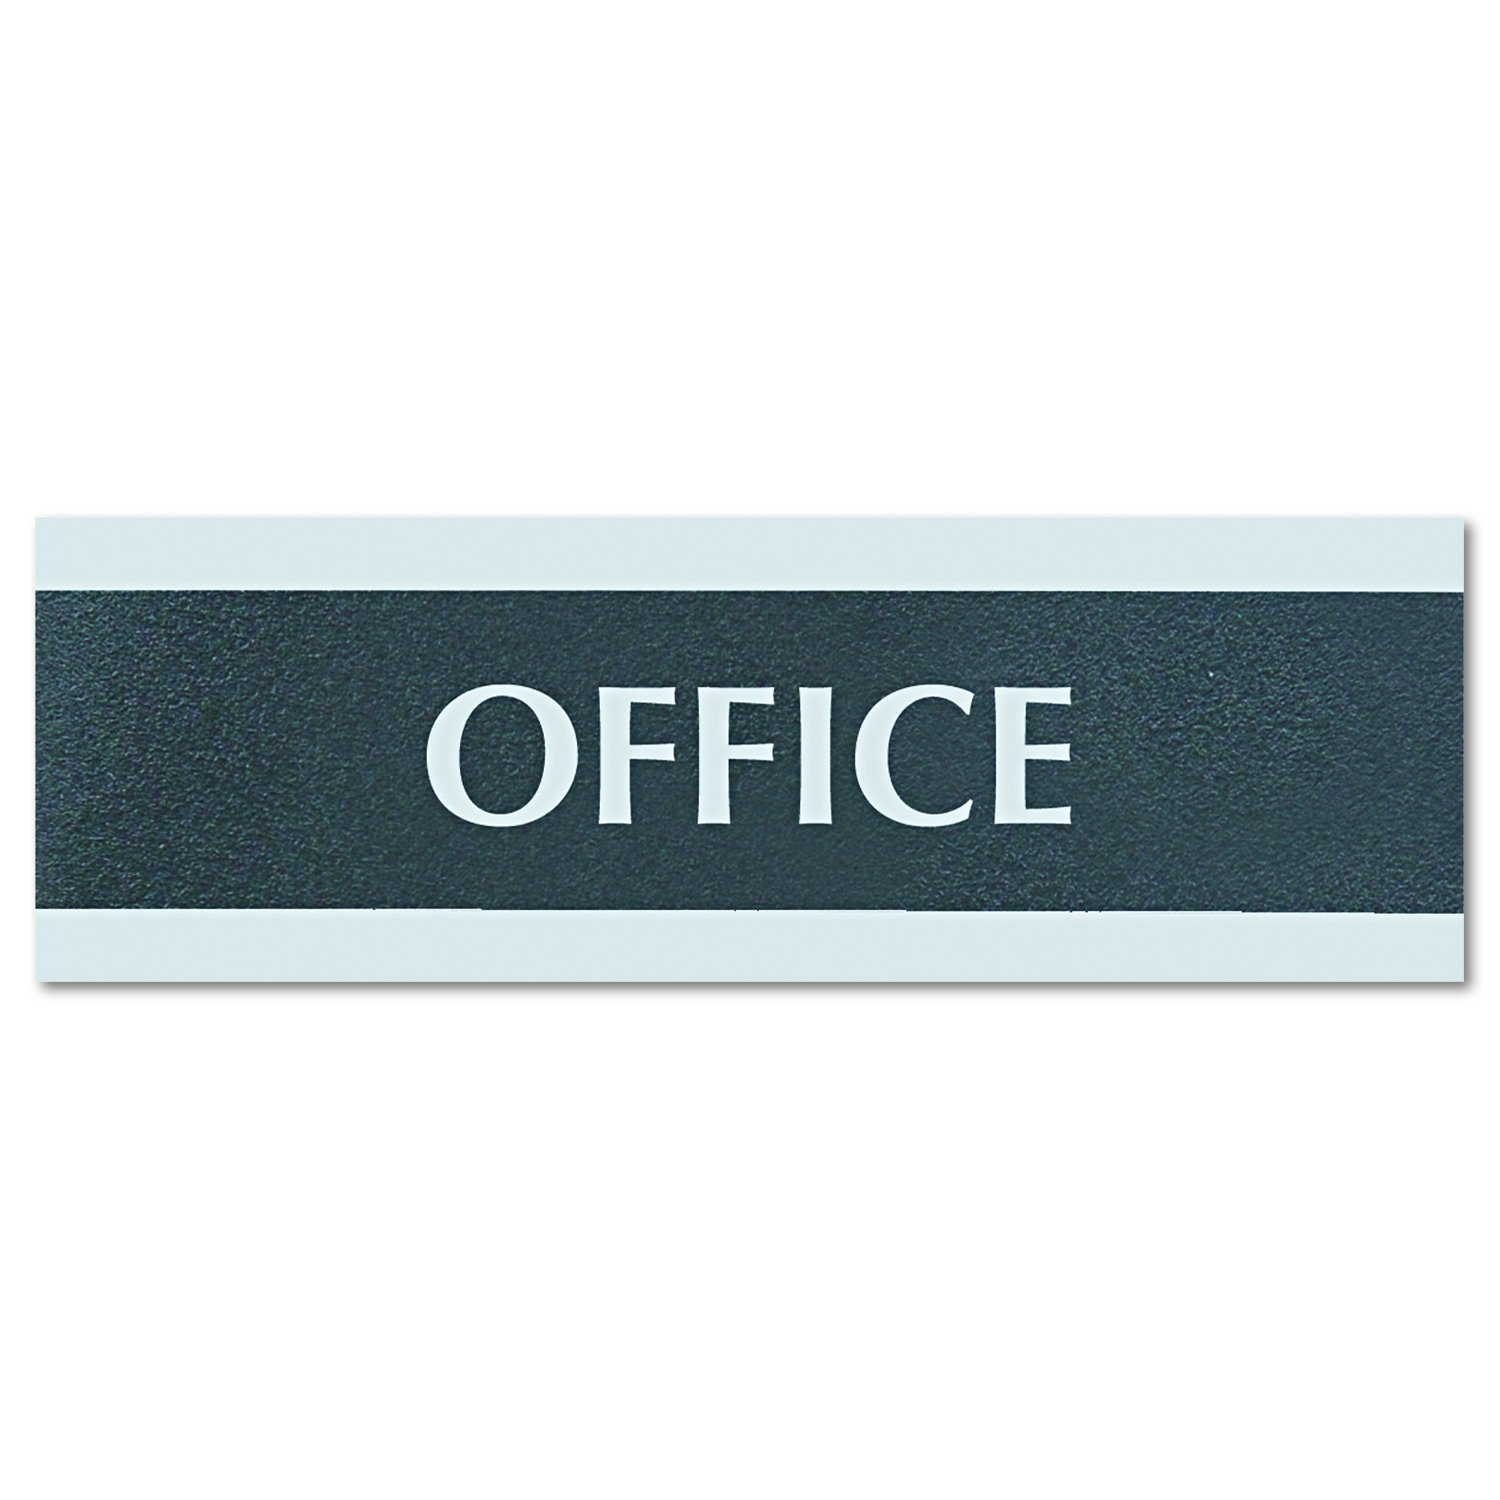 Headline Sign 4762 Century Series Office Sign, OFFICE, 9 x 3, Black/Silver